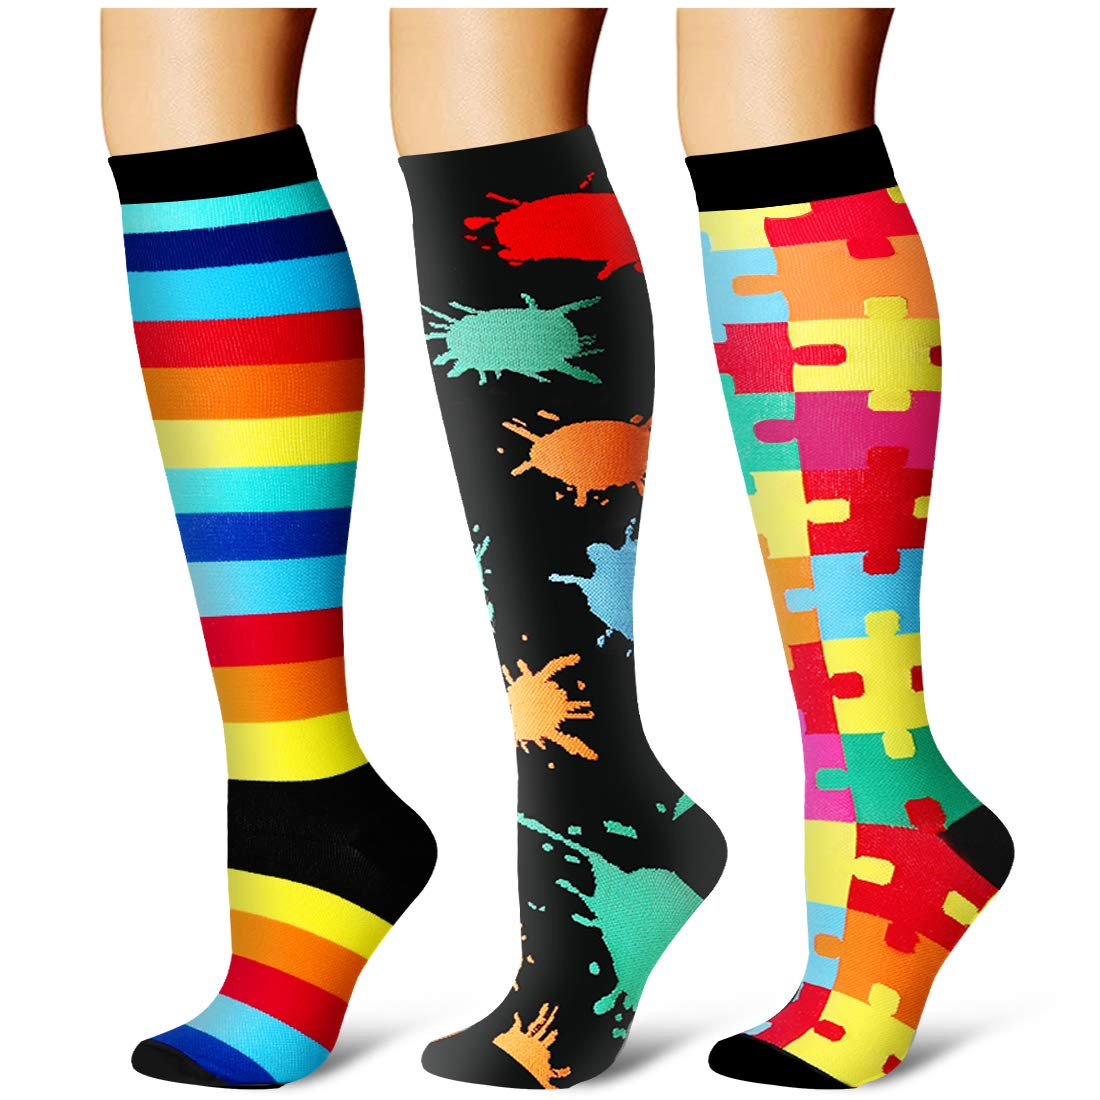 Compression Socks,(3 Pairs) Compression Sock for Women & Men - Best for Running, Athletic Sports, Crossfit, Flight Travel(Multti-colors8-S/M) by Laite Hebe